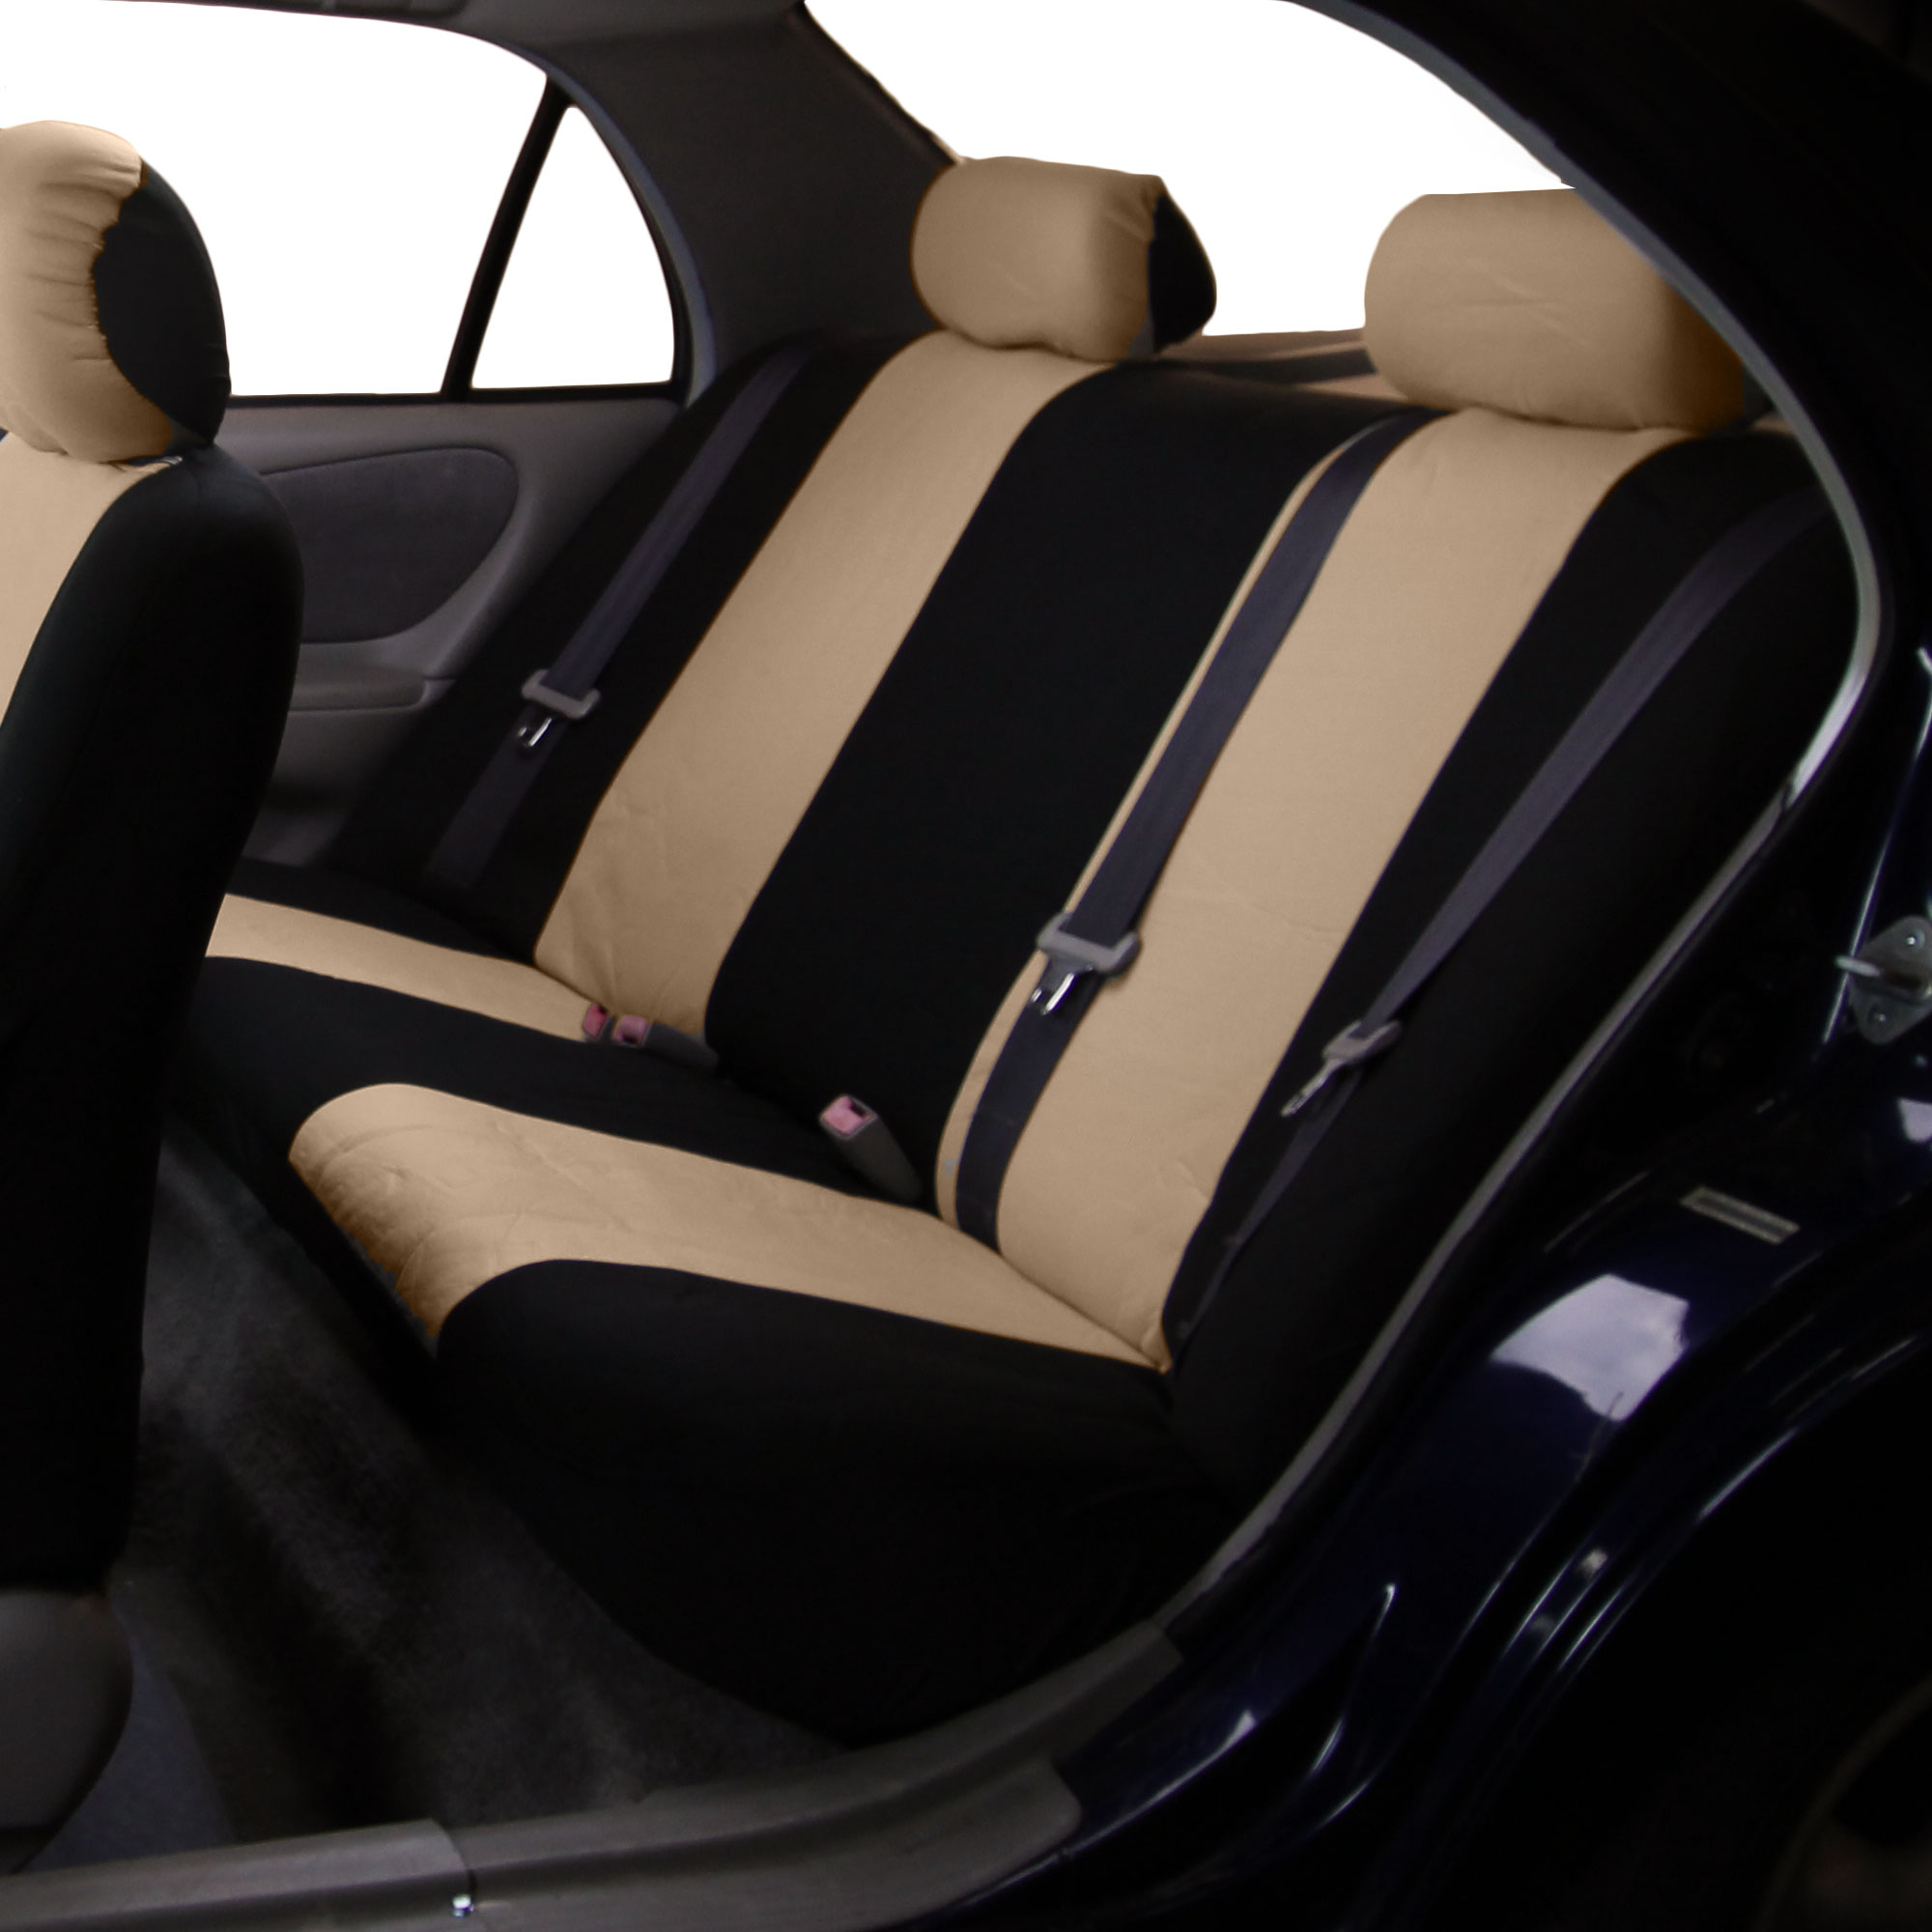 Car Seat Covers For Rear Seat Luxury Sporty For Car Suv Minivan Ebay